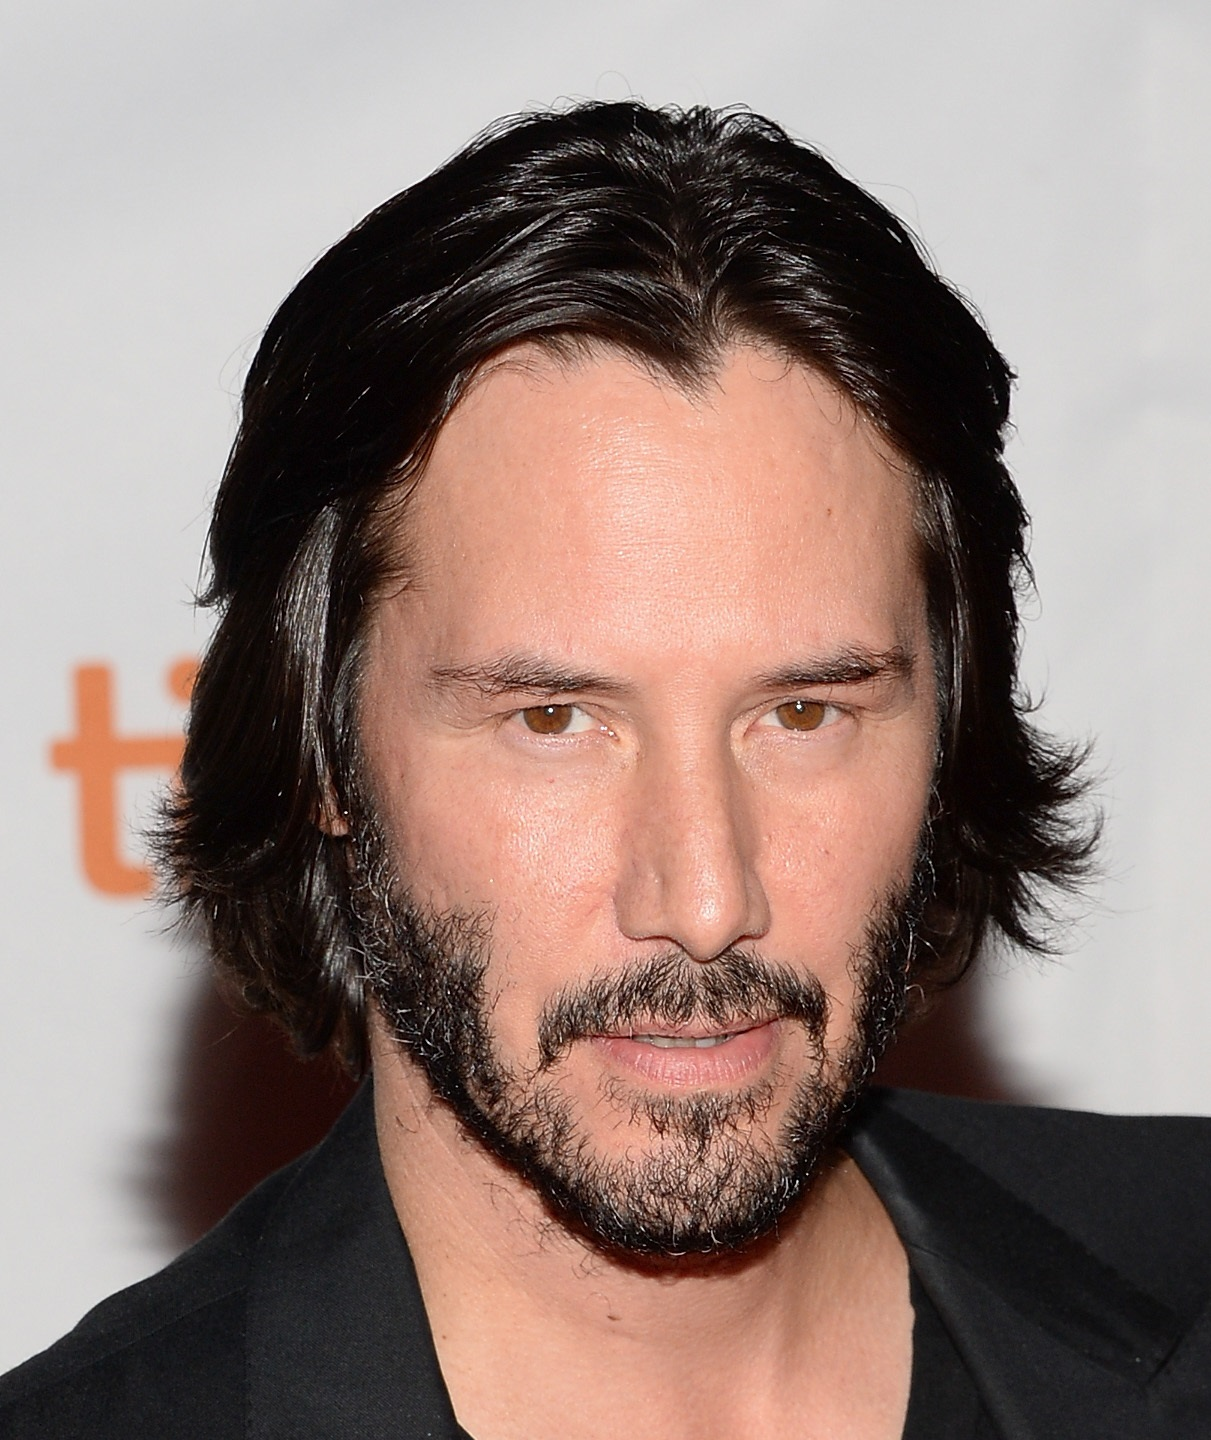 reeves lesbian singles Keanu reeves in 2018: is he married or dating a new girlfriend how rich is he does keanu reeves have tattoos does he smoke + body measurements & other facts.